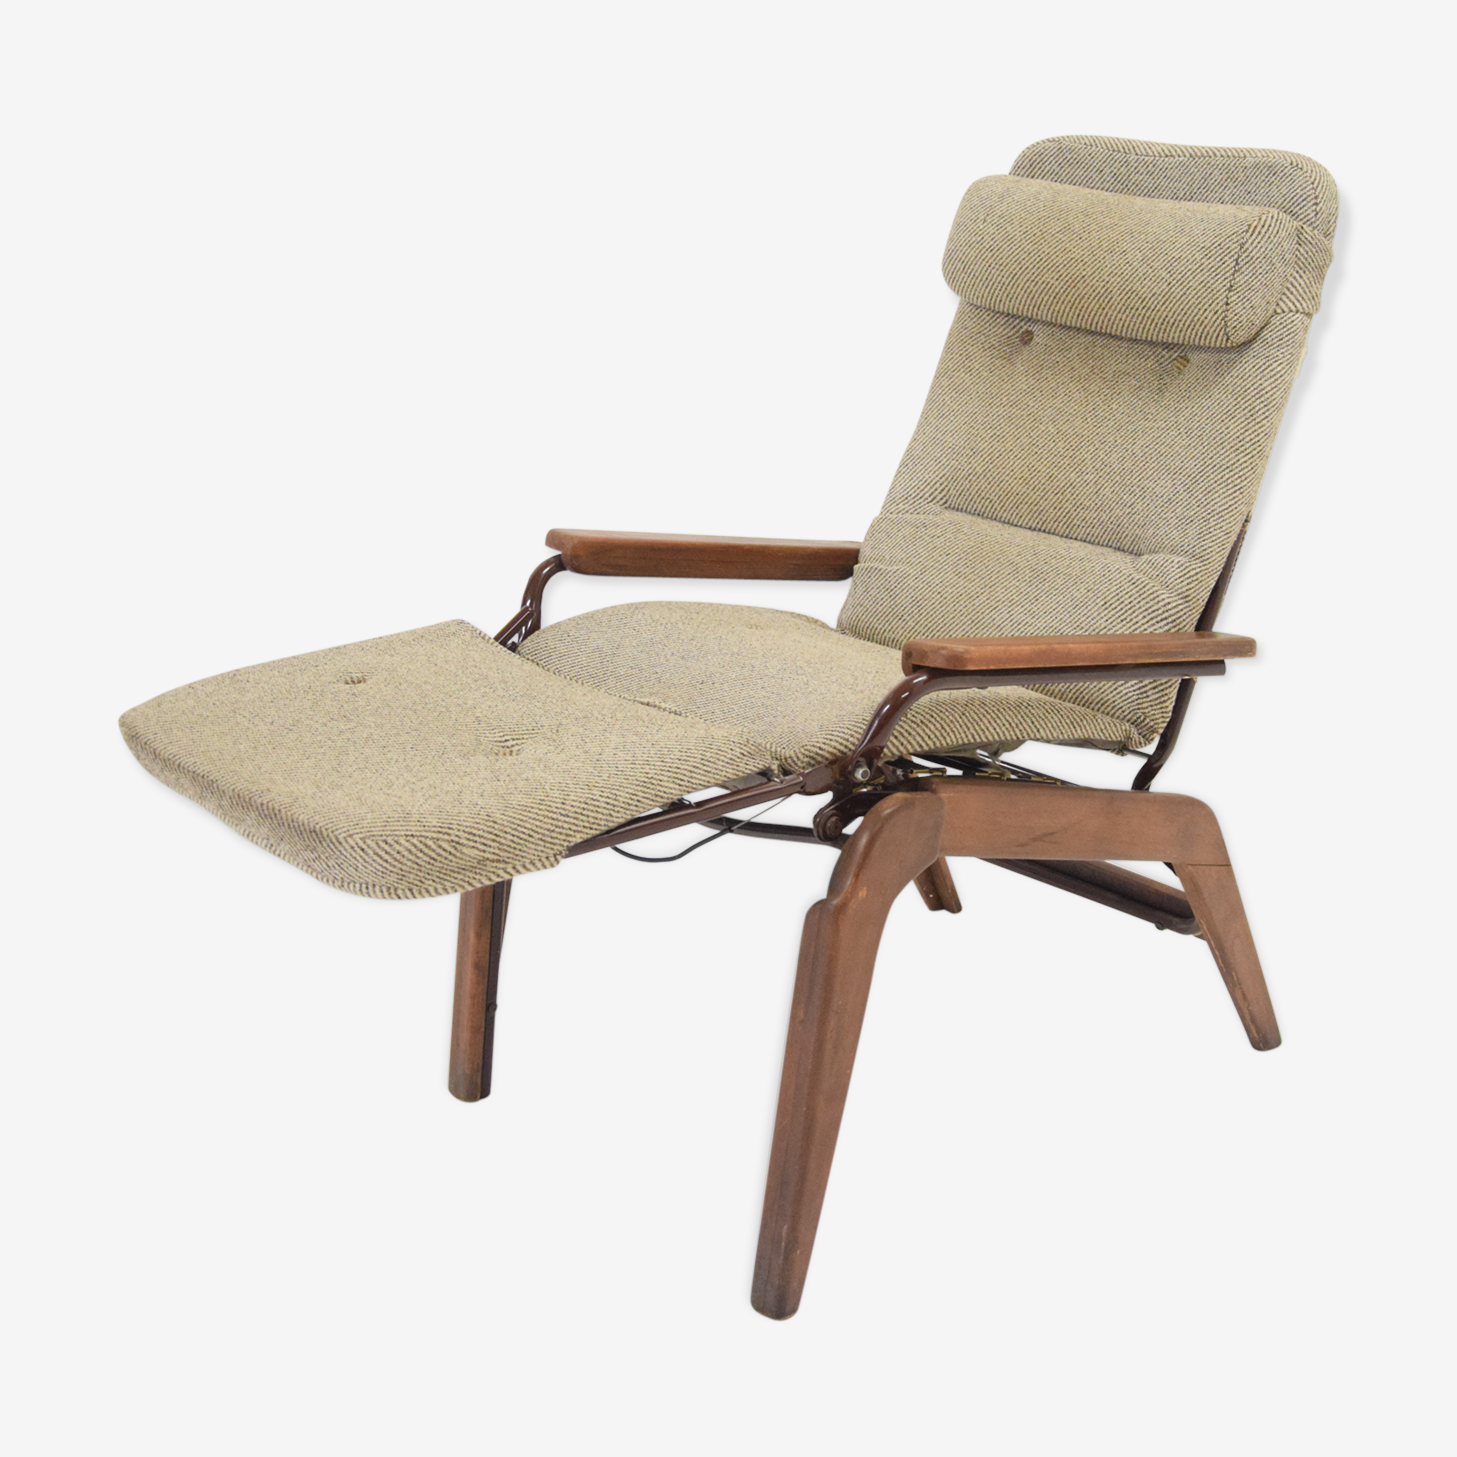 Relaxed recliner armchair from the 60/70s from Lama